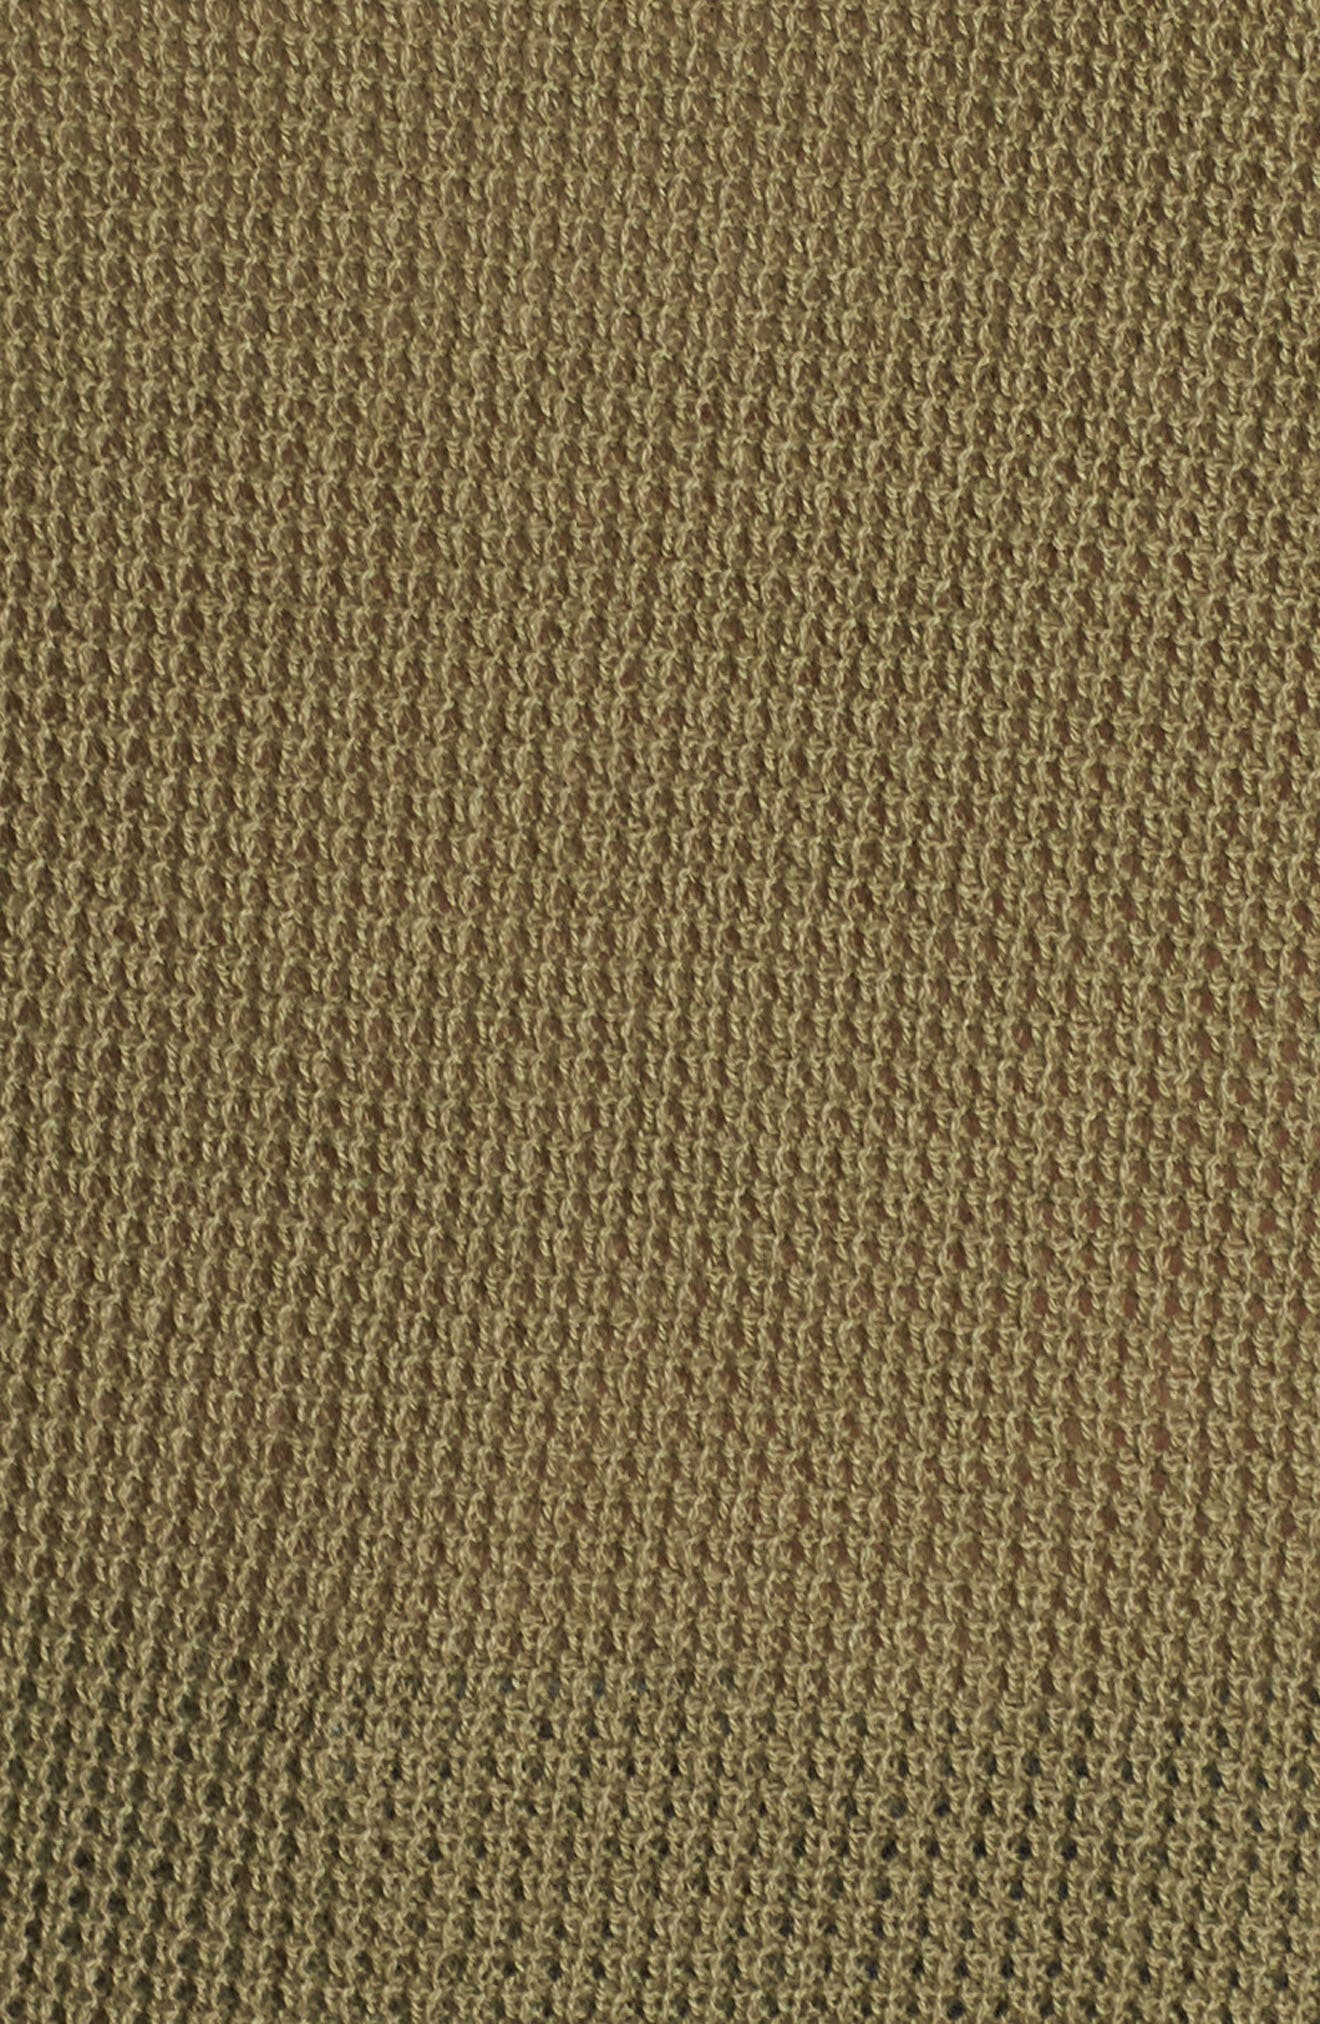 Coastal Thermal Sweater,                             Alternate thumbnail 11, color,                             OLIVE BURNT